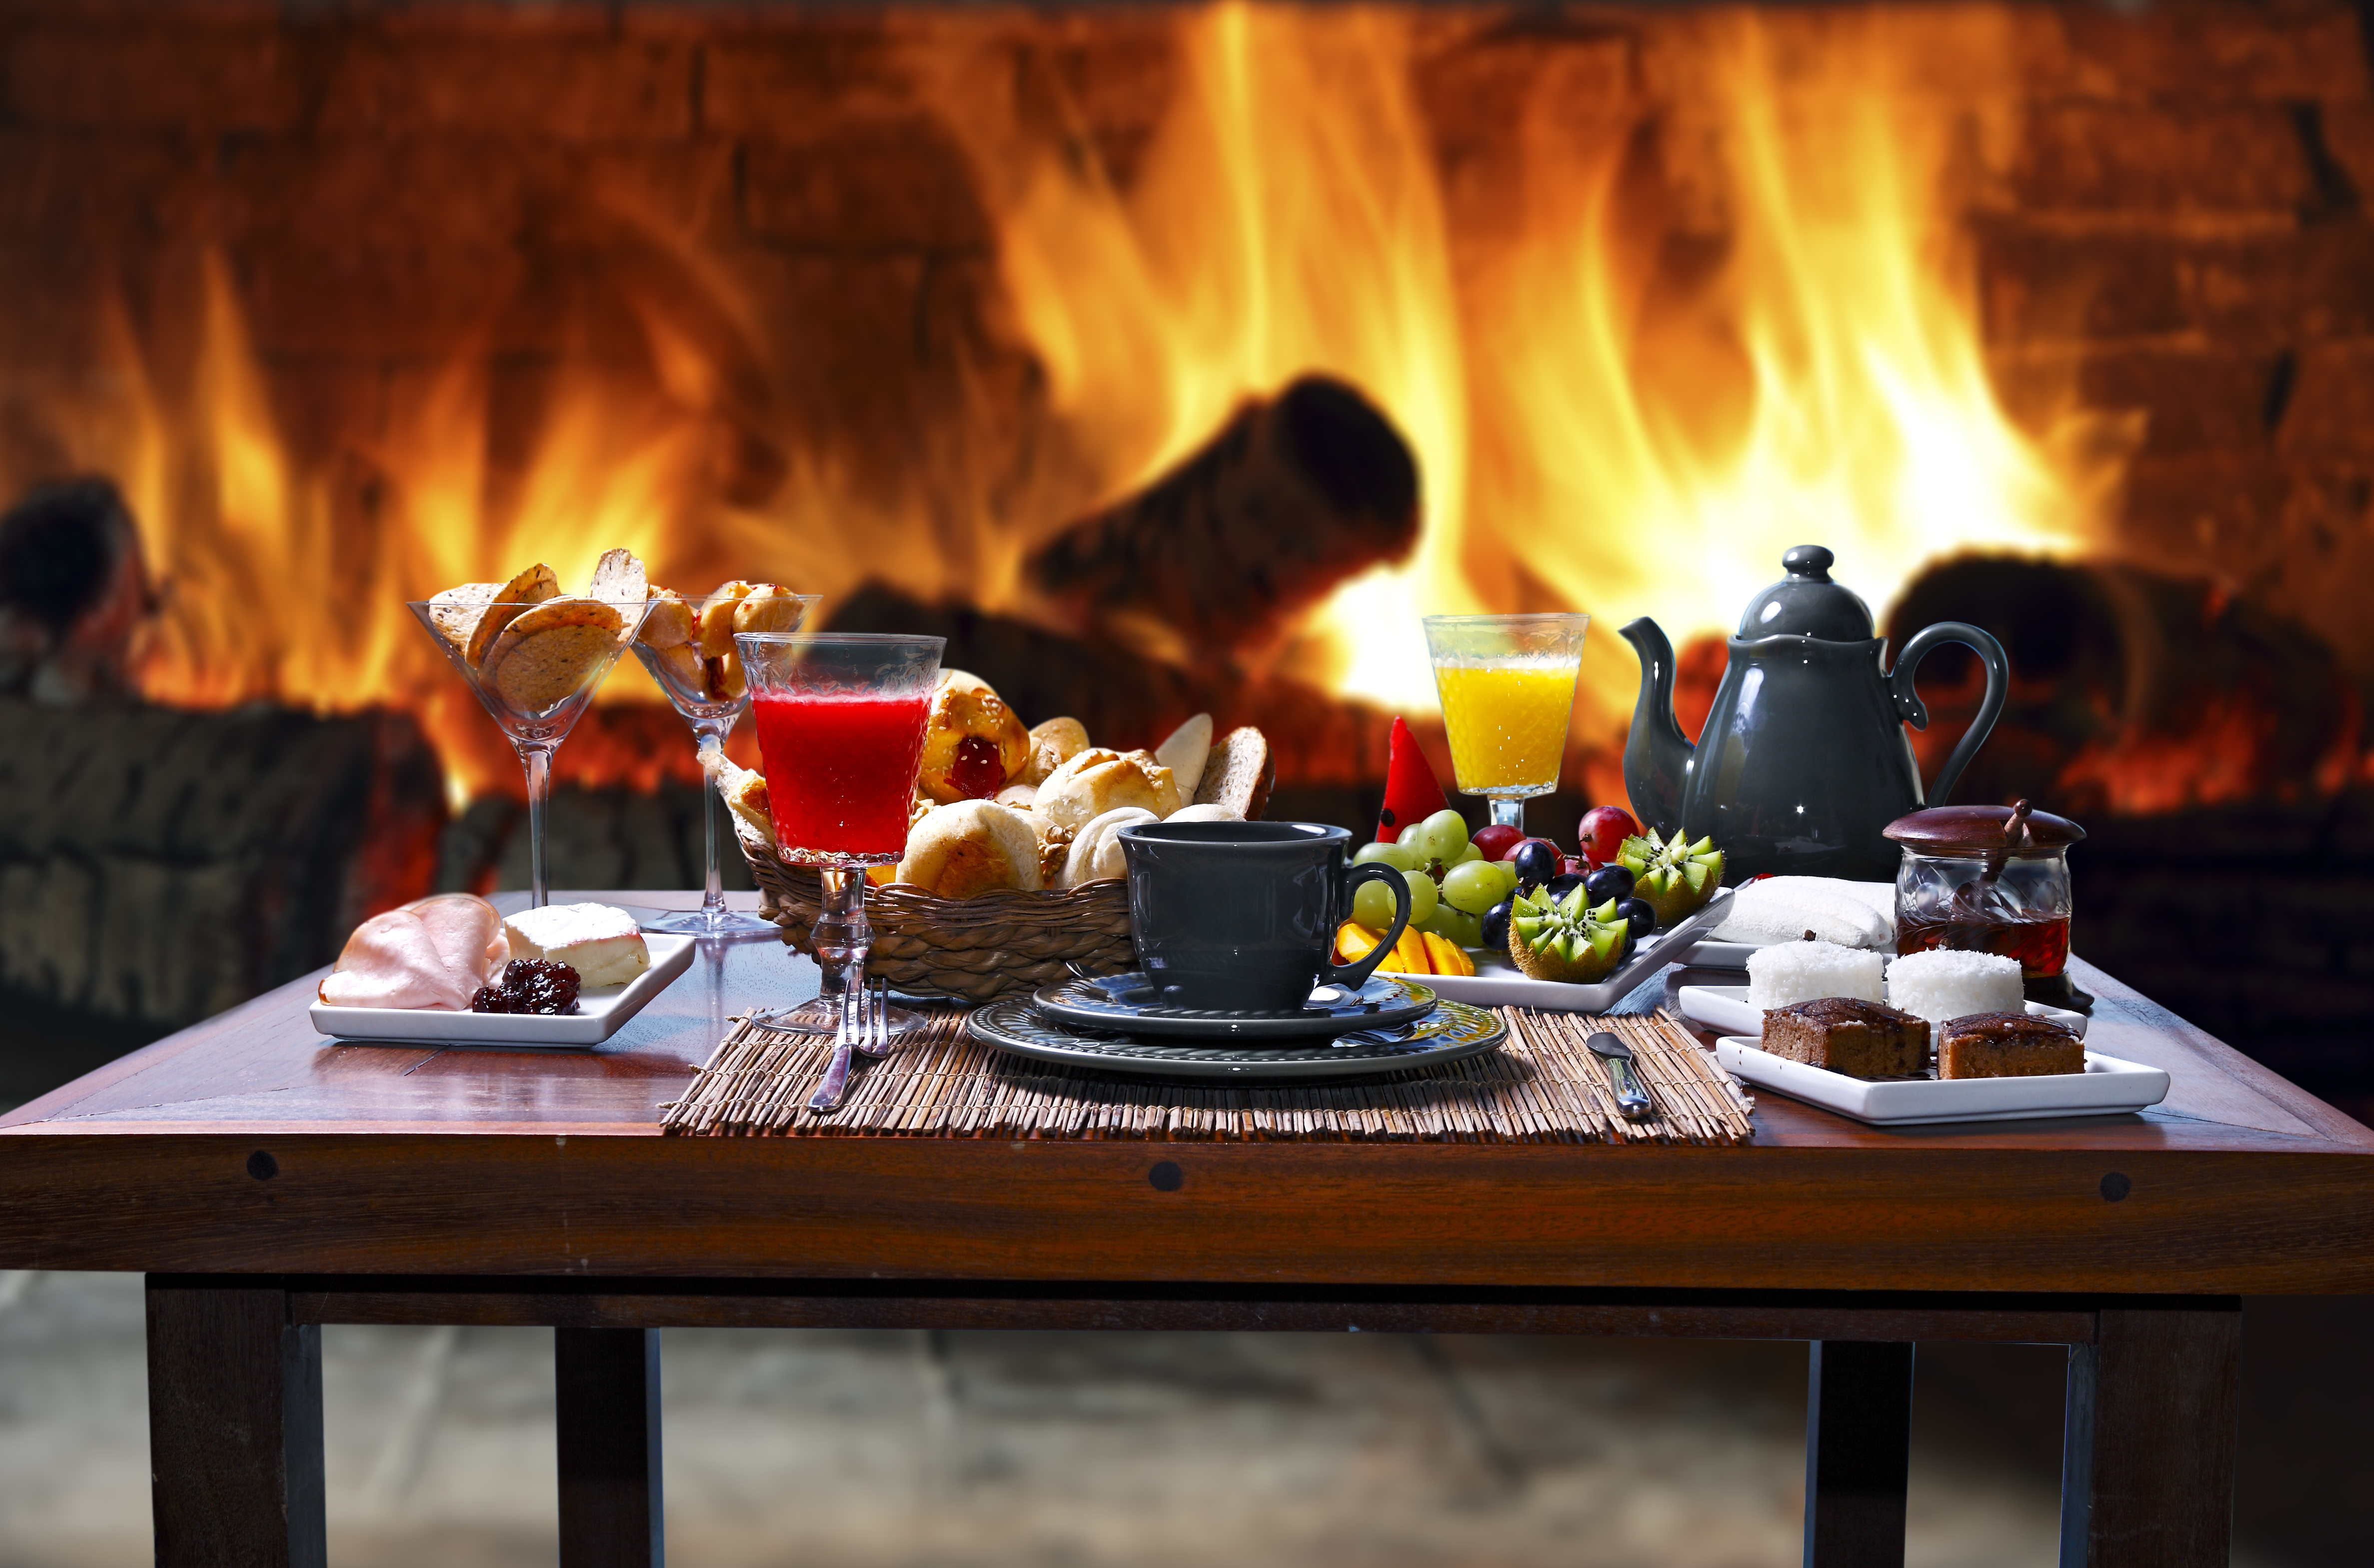 A table in front of a fireplace laden with food and drinks, including a tea pot, fruit plate, and bread basket